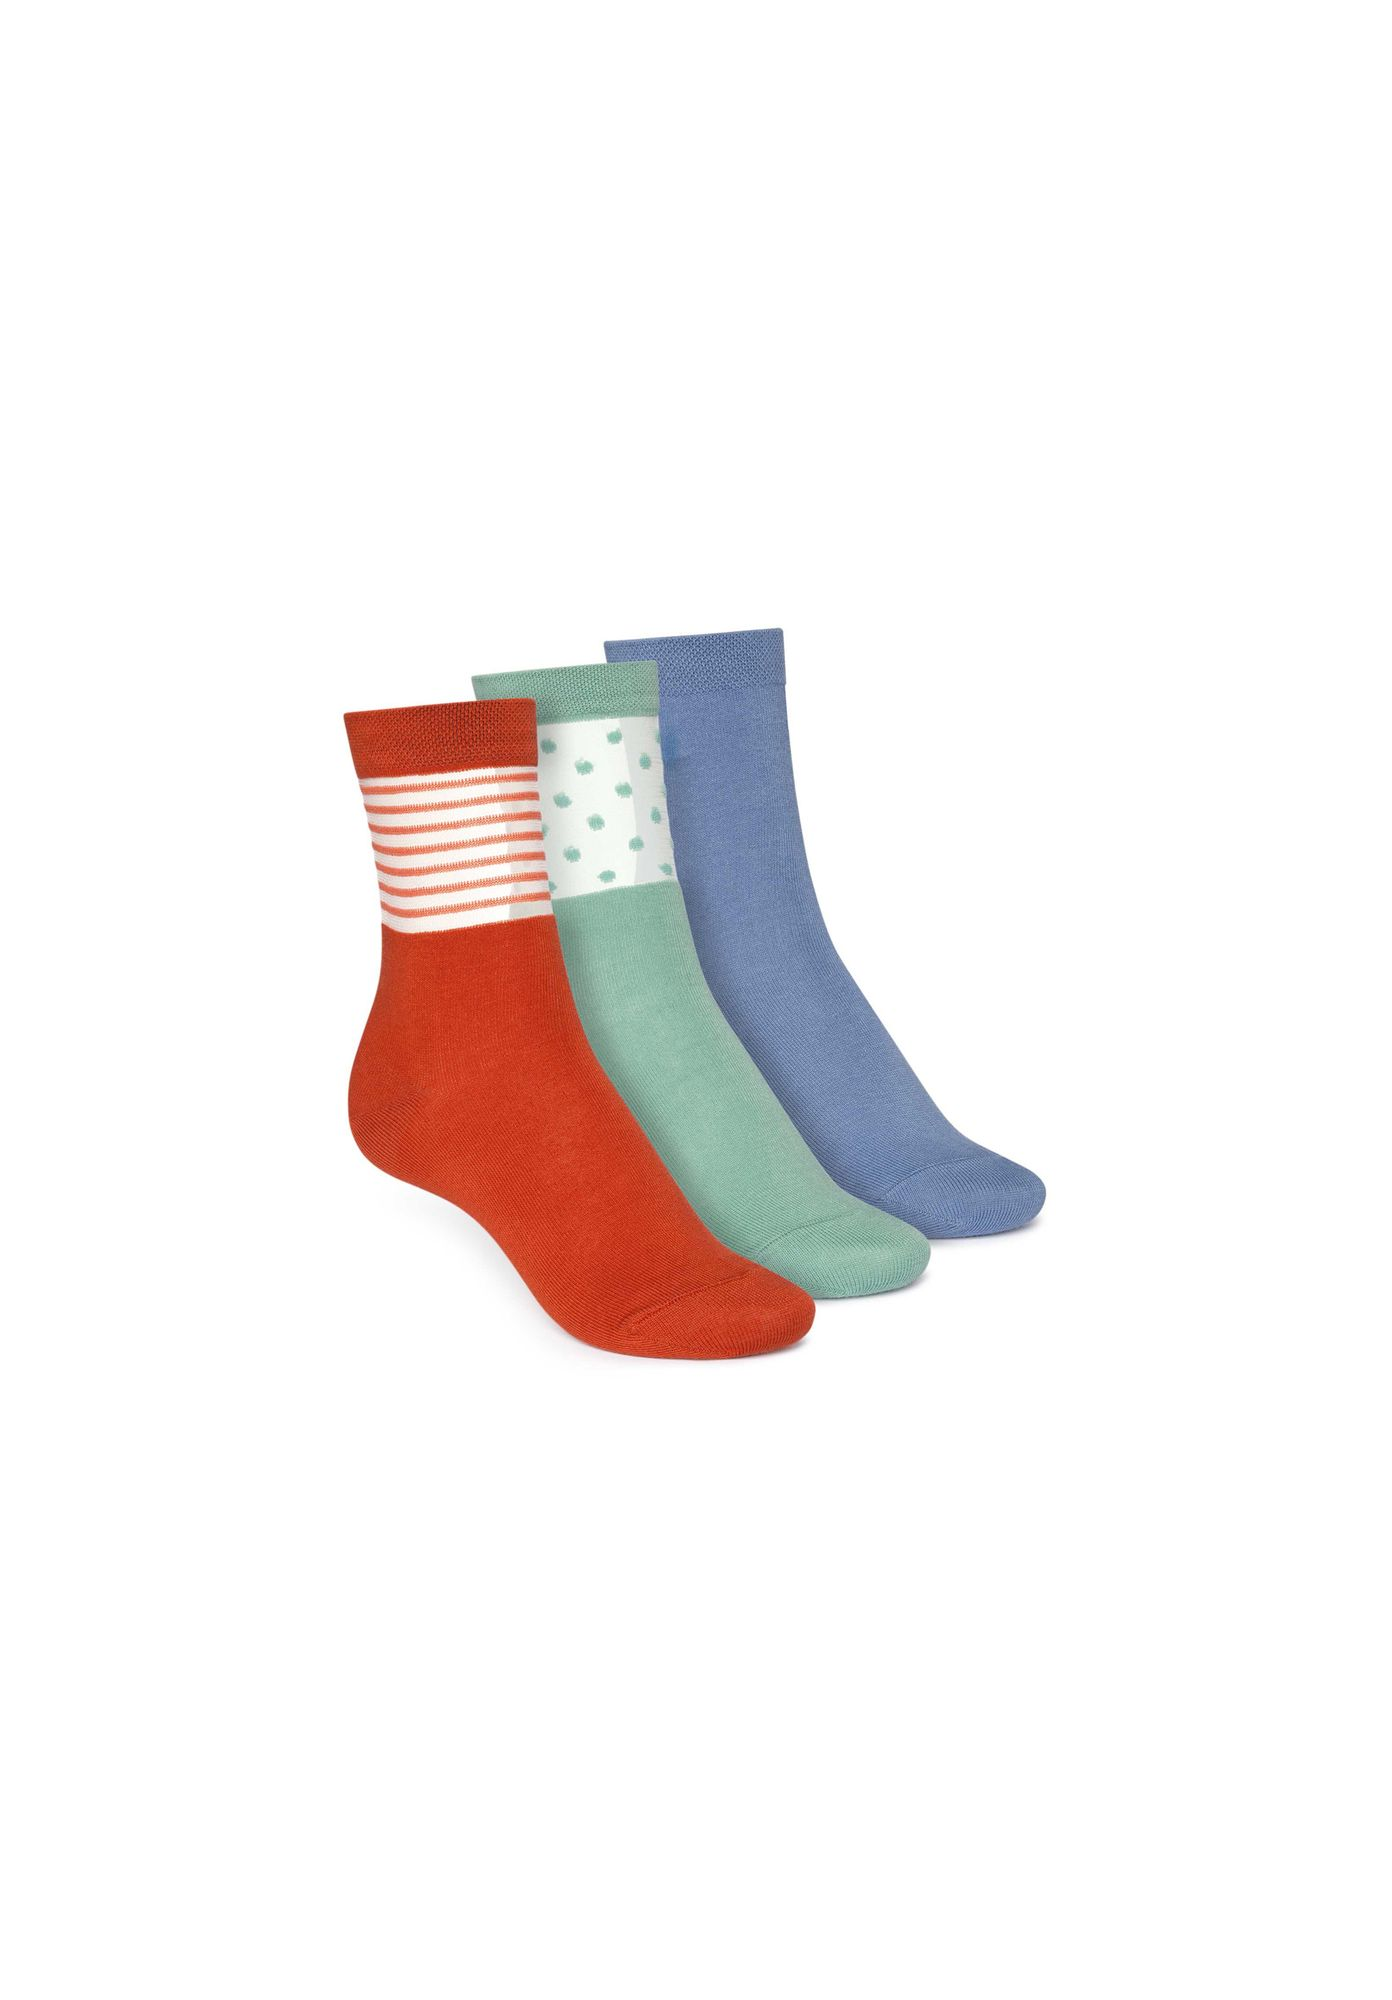 3 Pack Mid Socks Ironblue/Cabbage Dots/Tangerine Stripes